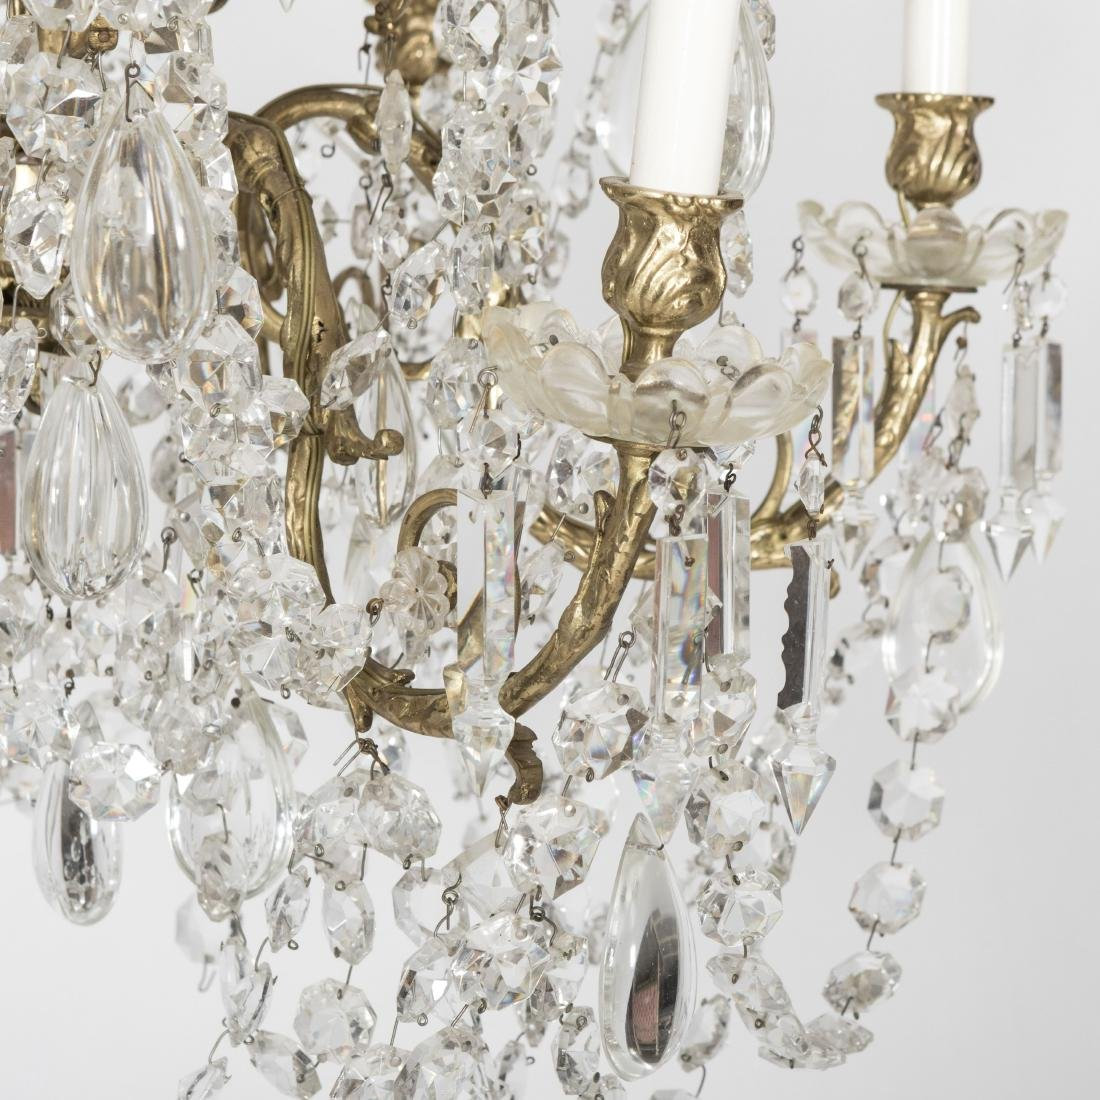 Twelve Arm French Style Chandelier - 3